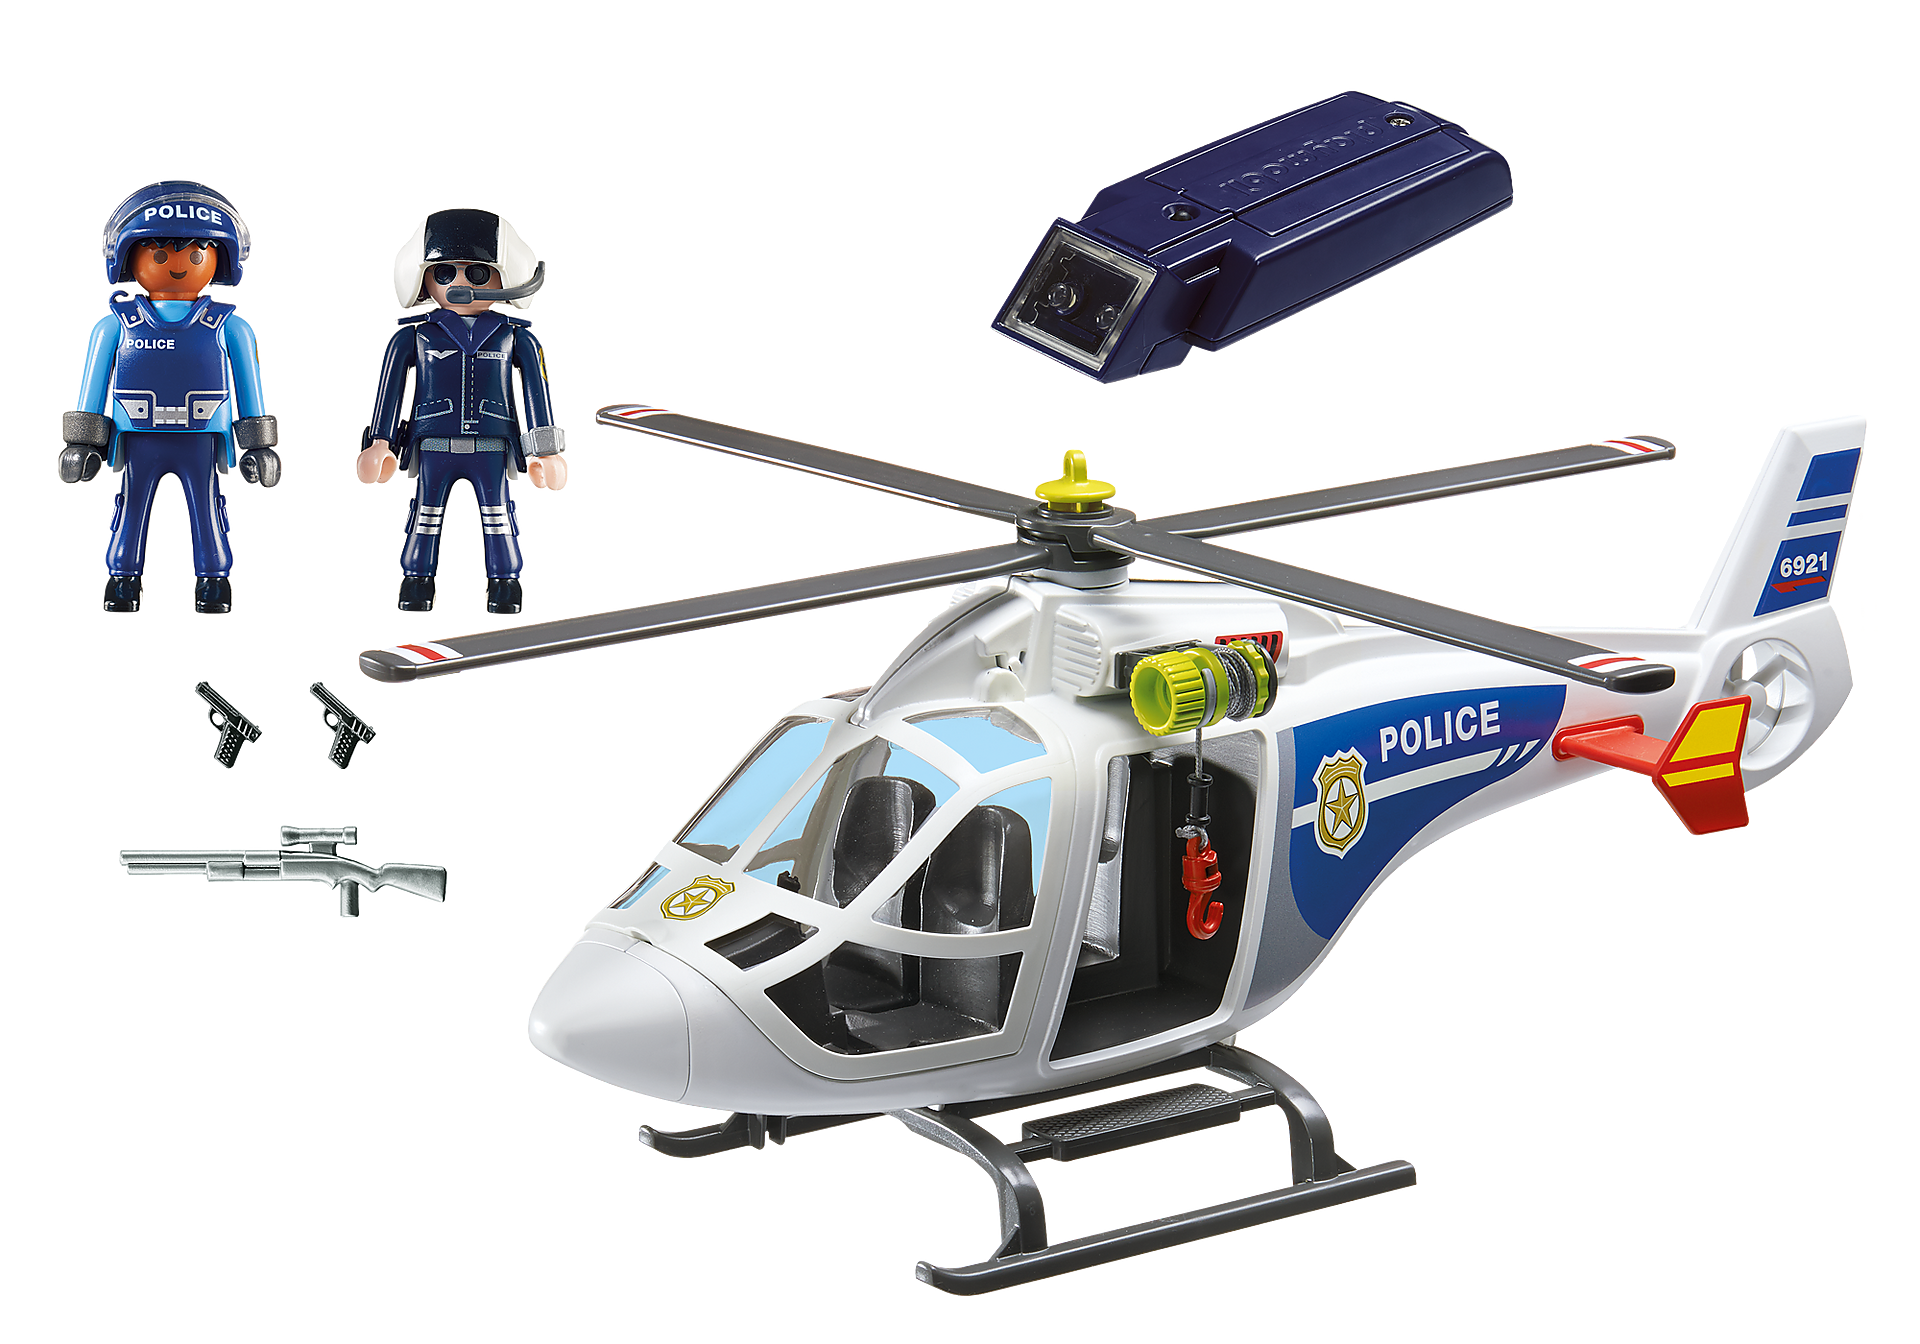 6921 Police Helicopter with LED Searchlight zoom image3